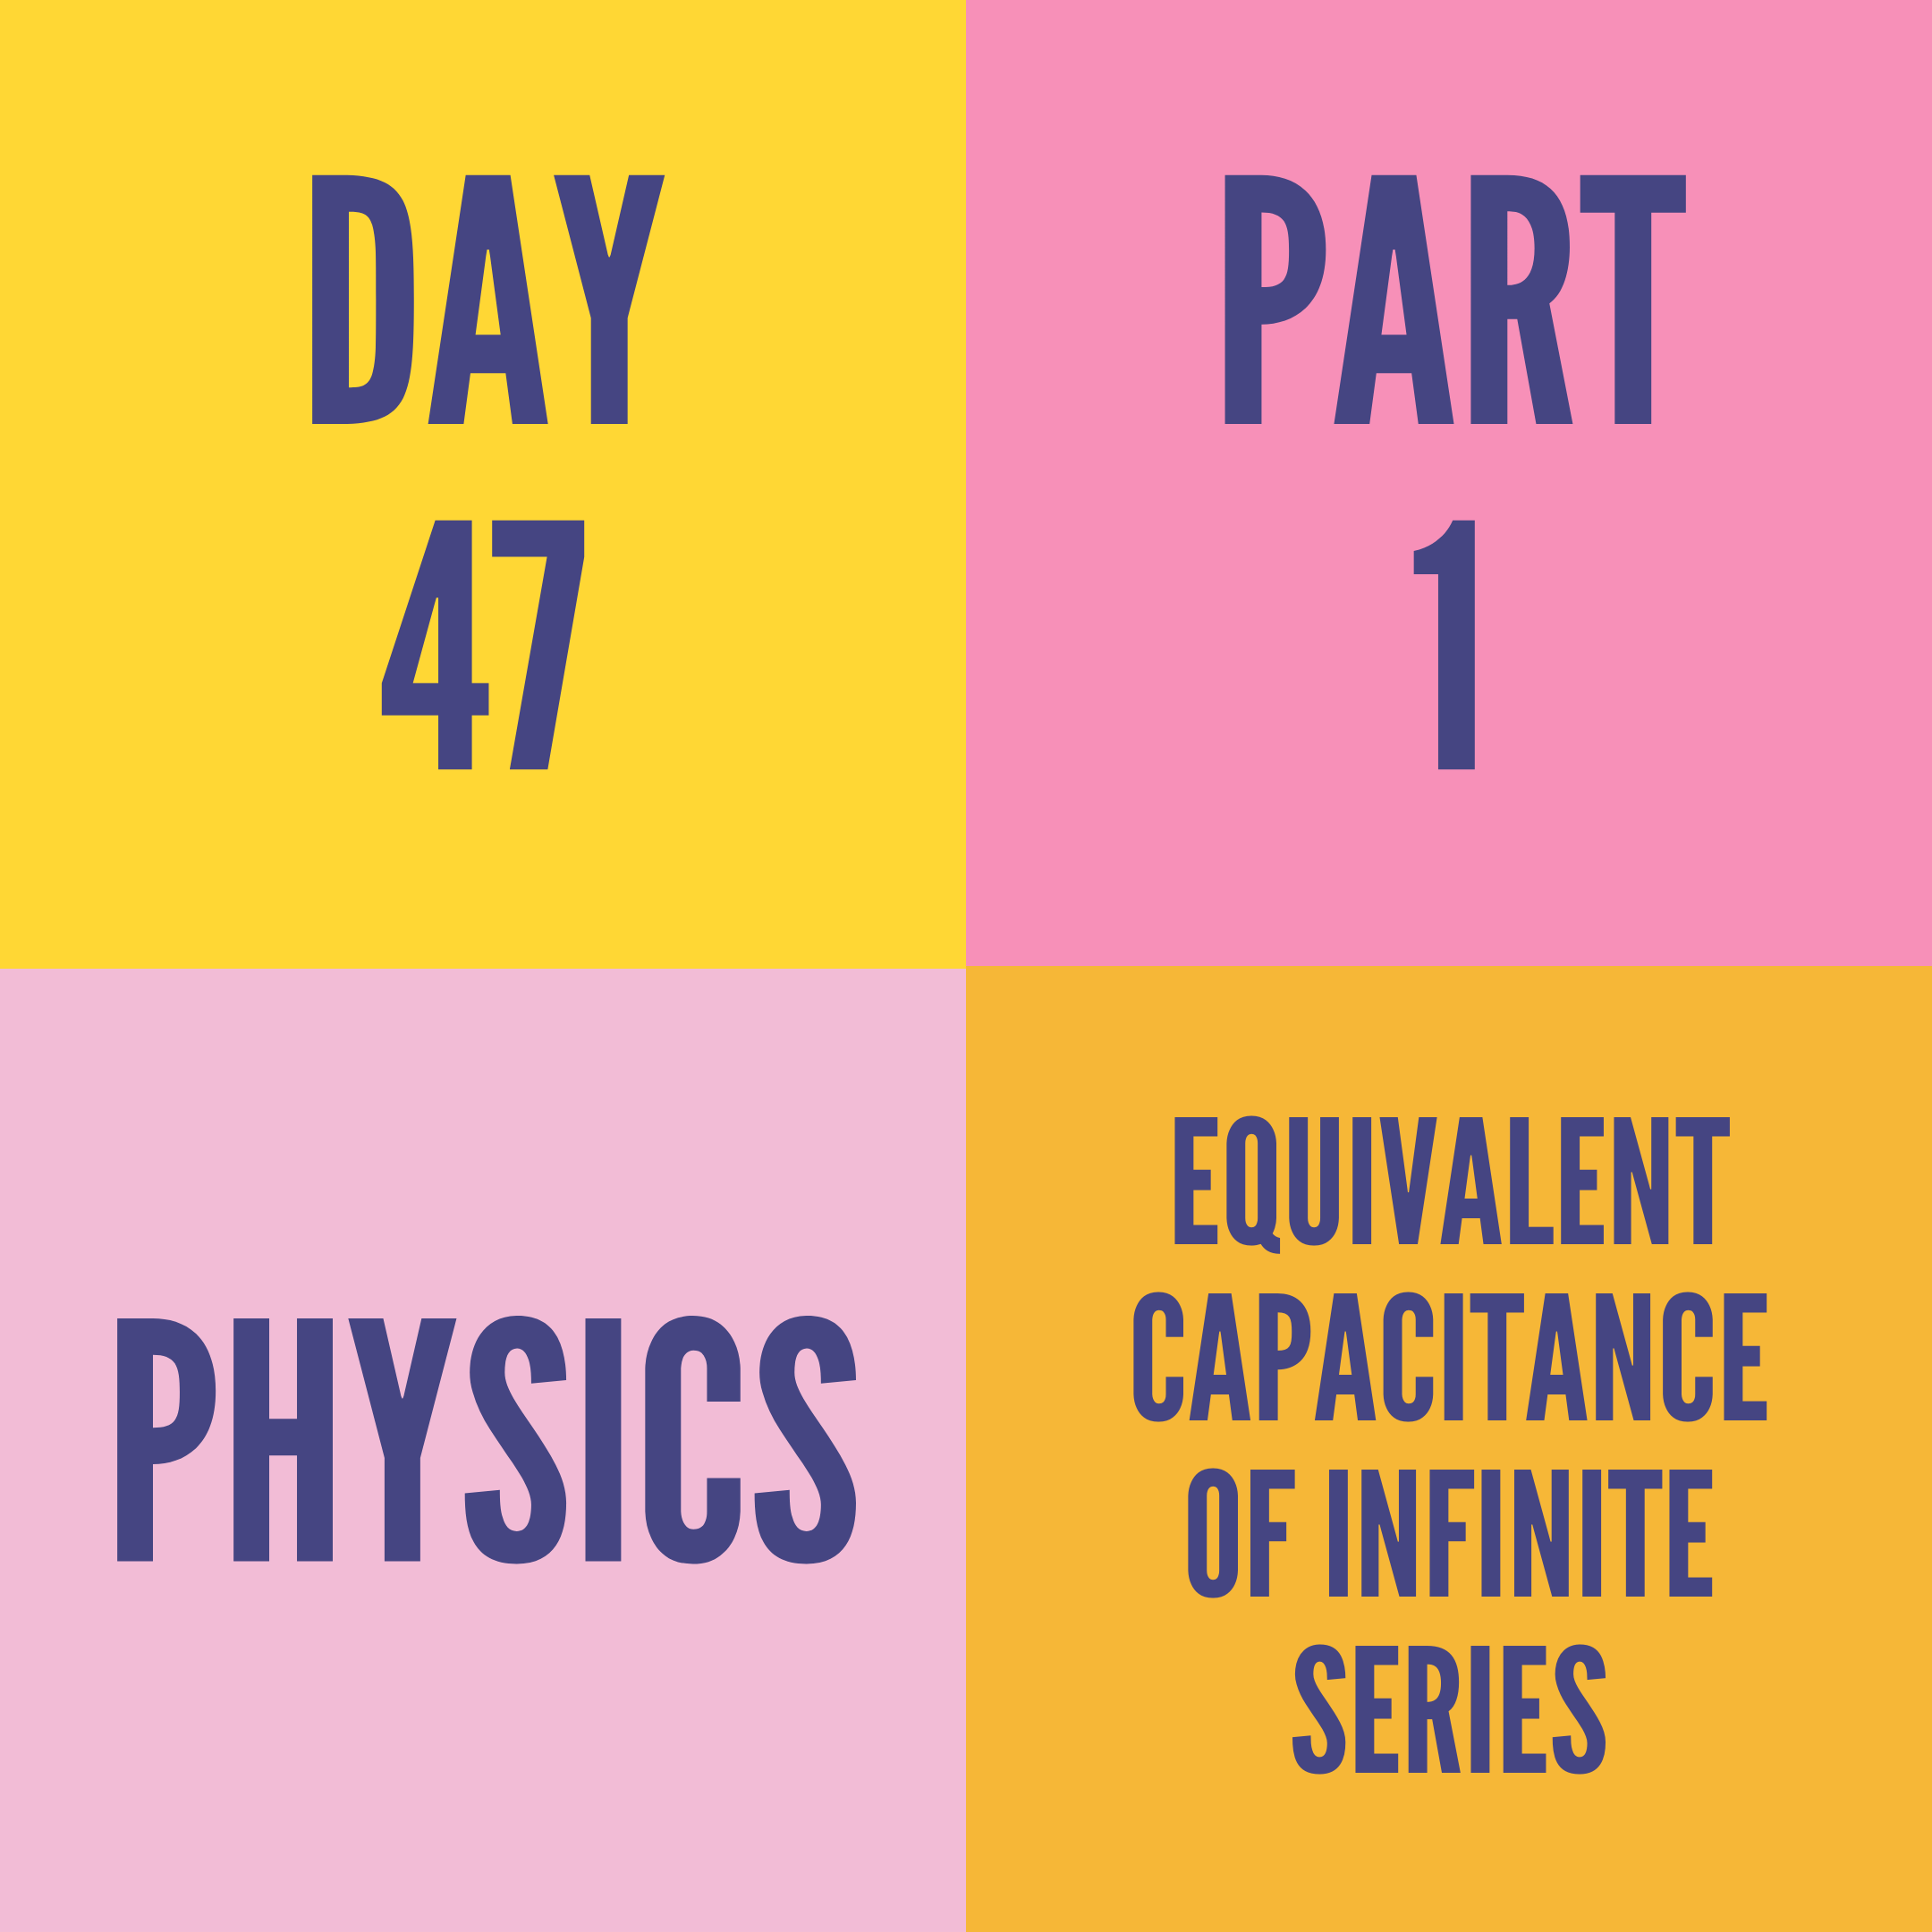 DAY-47 PART-1  EQUIVALENT CAPACITANCE OF INFINITE SERIES